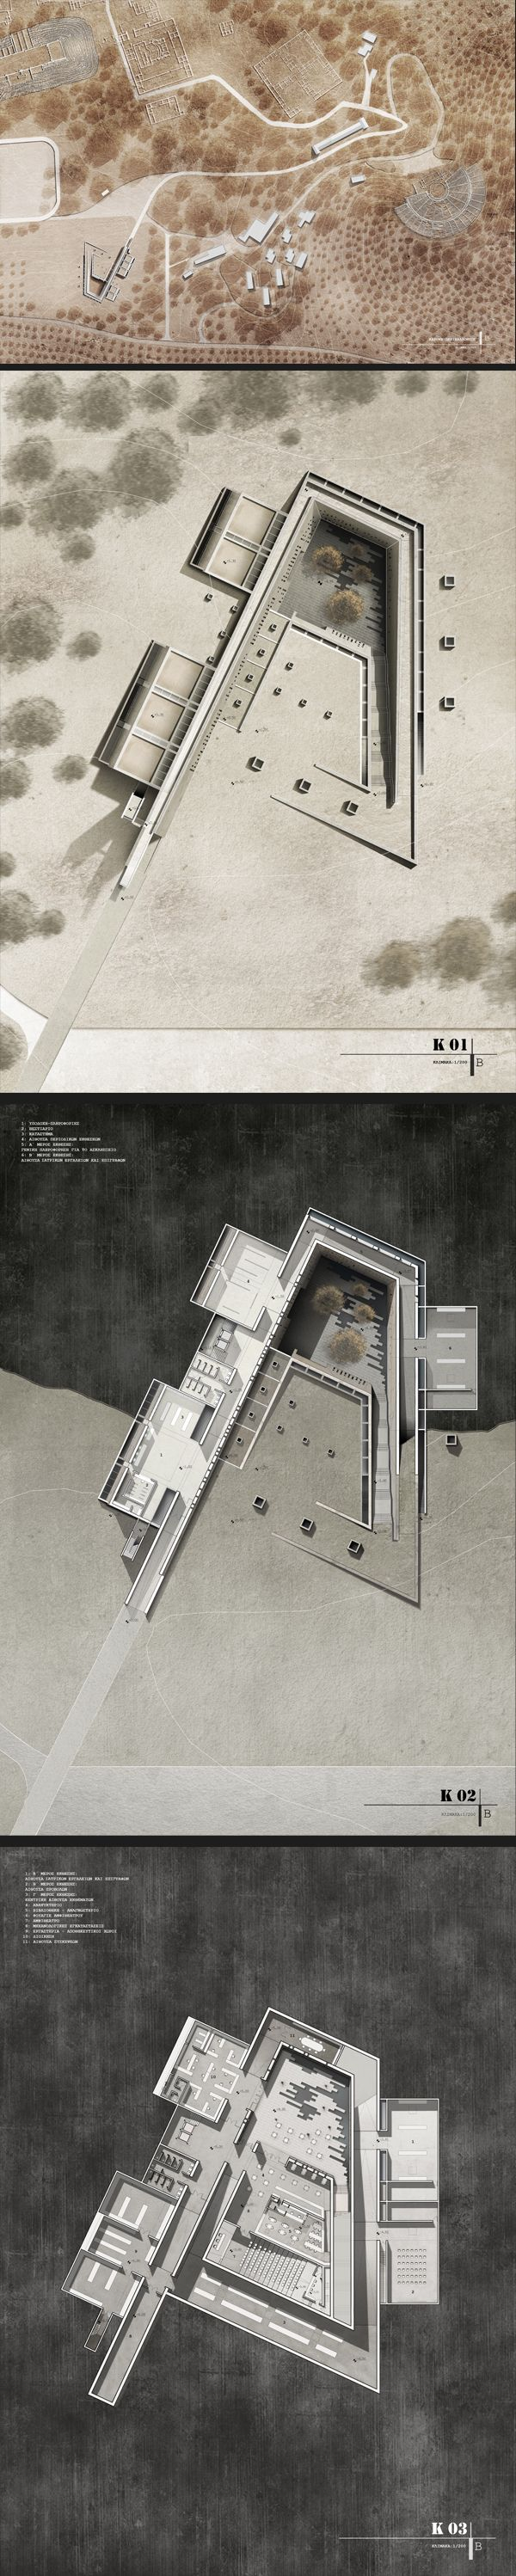 712 best images about ideas for architectural for Architectural site plan drawing